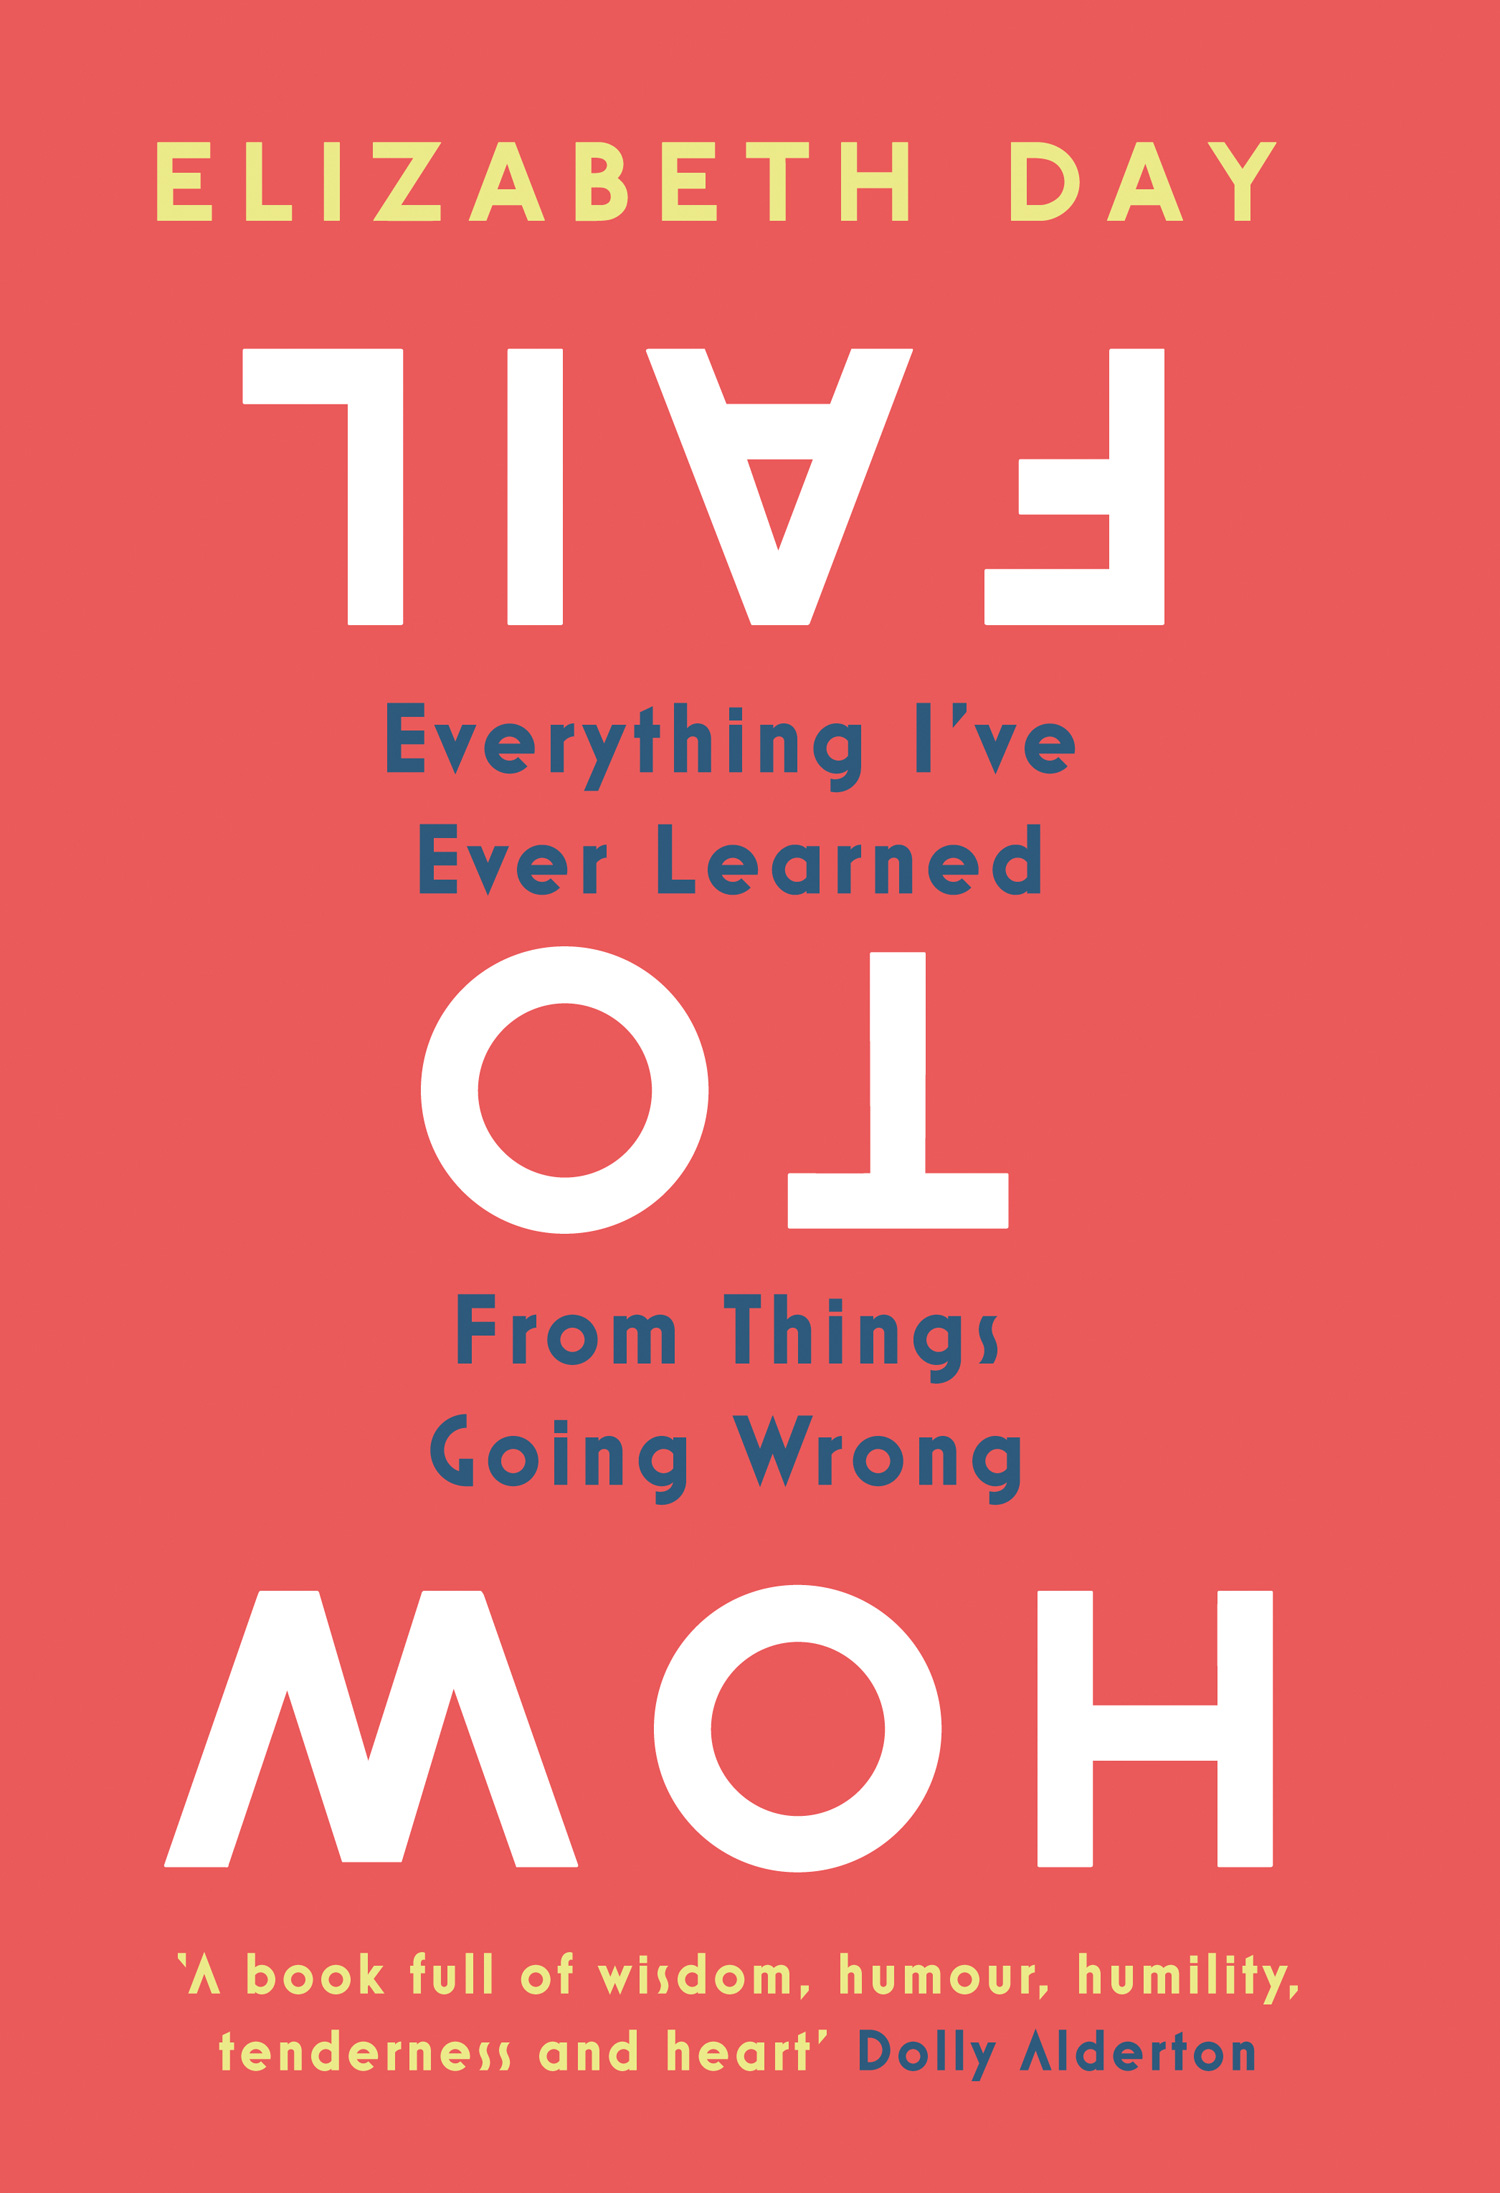 Elizabeth Day How to Fail: Everything I've Ever Learned From Things Going Wrong ralph ward d saving the corporate board why boards fail and how to fix them